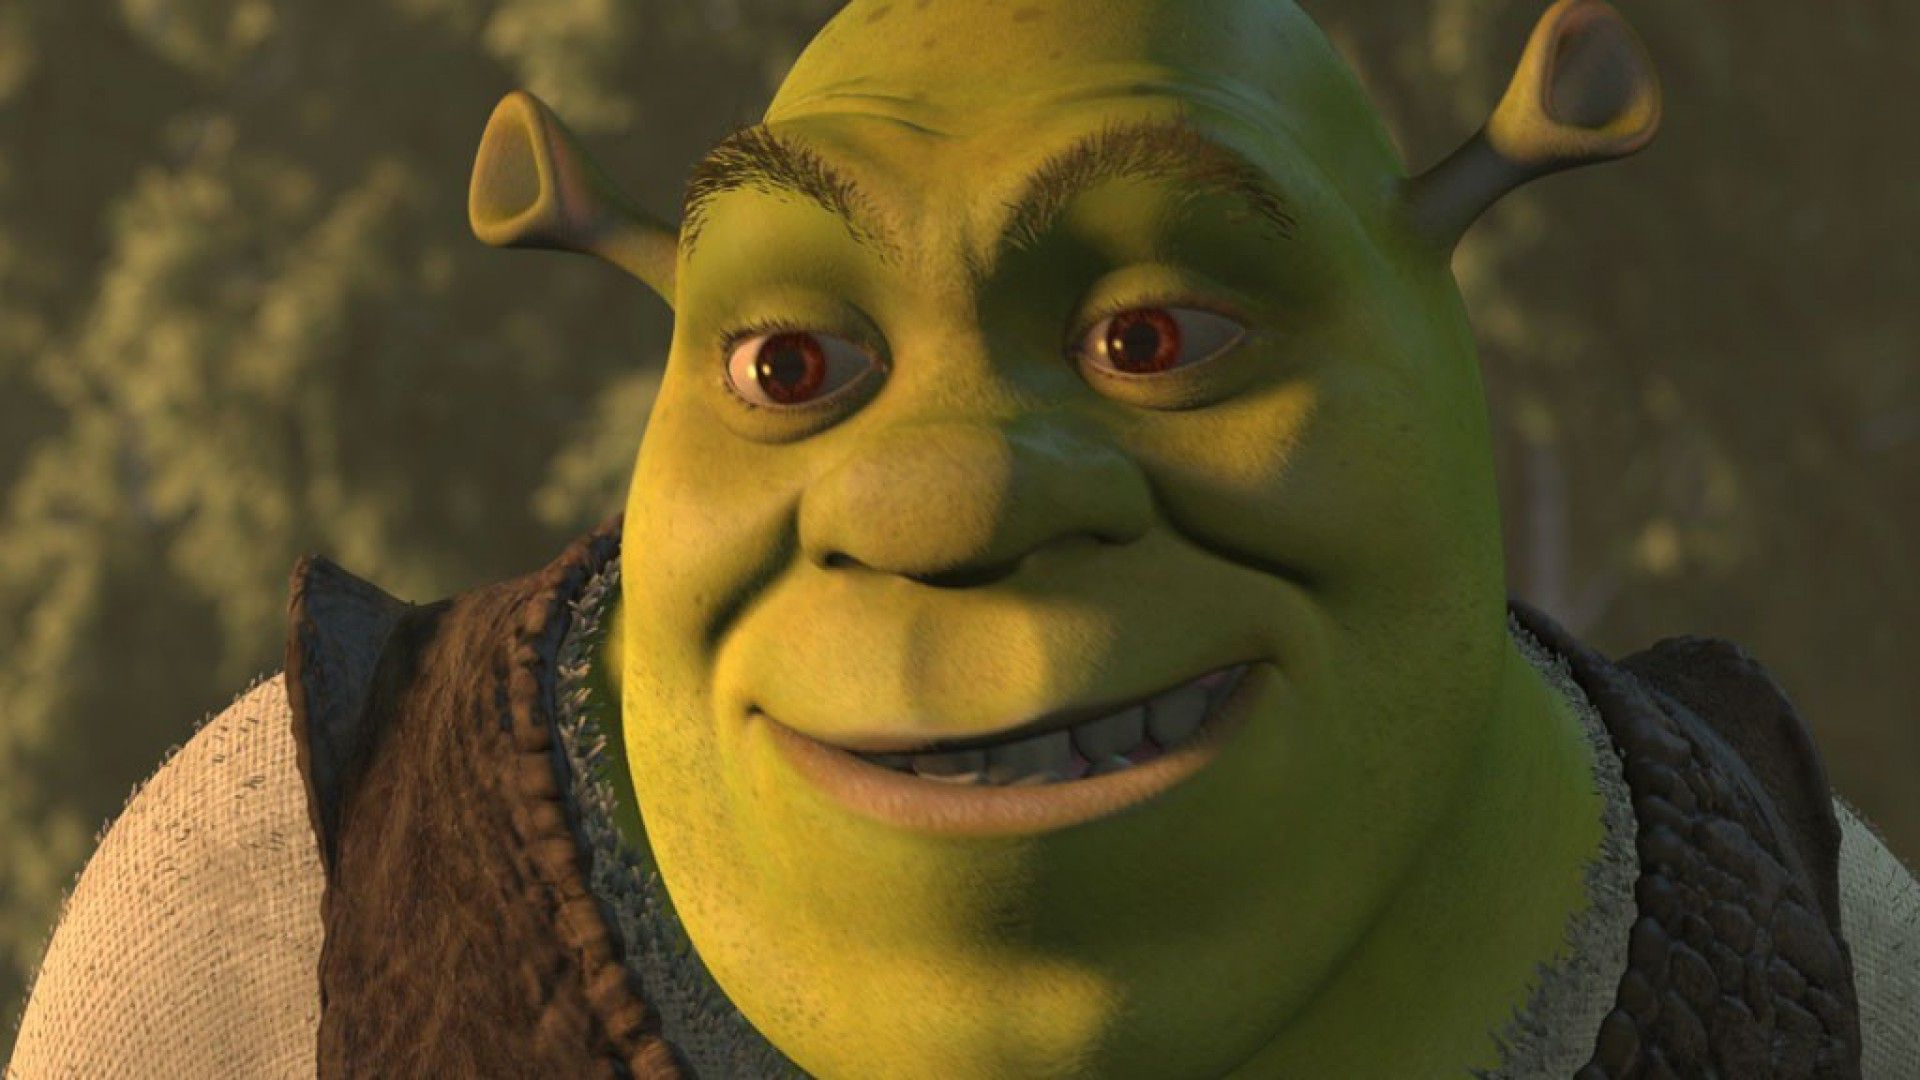 Shrek Wallpapers - Wallpaper Cave